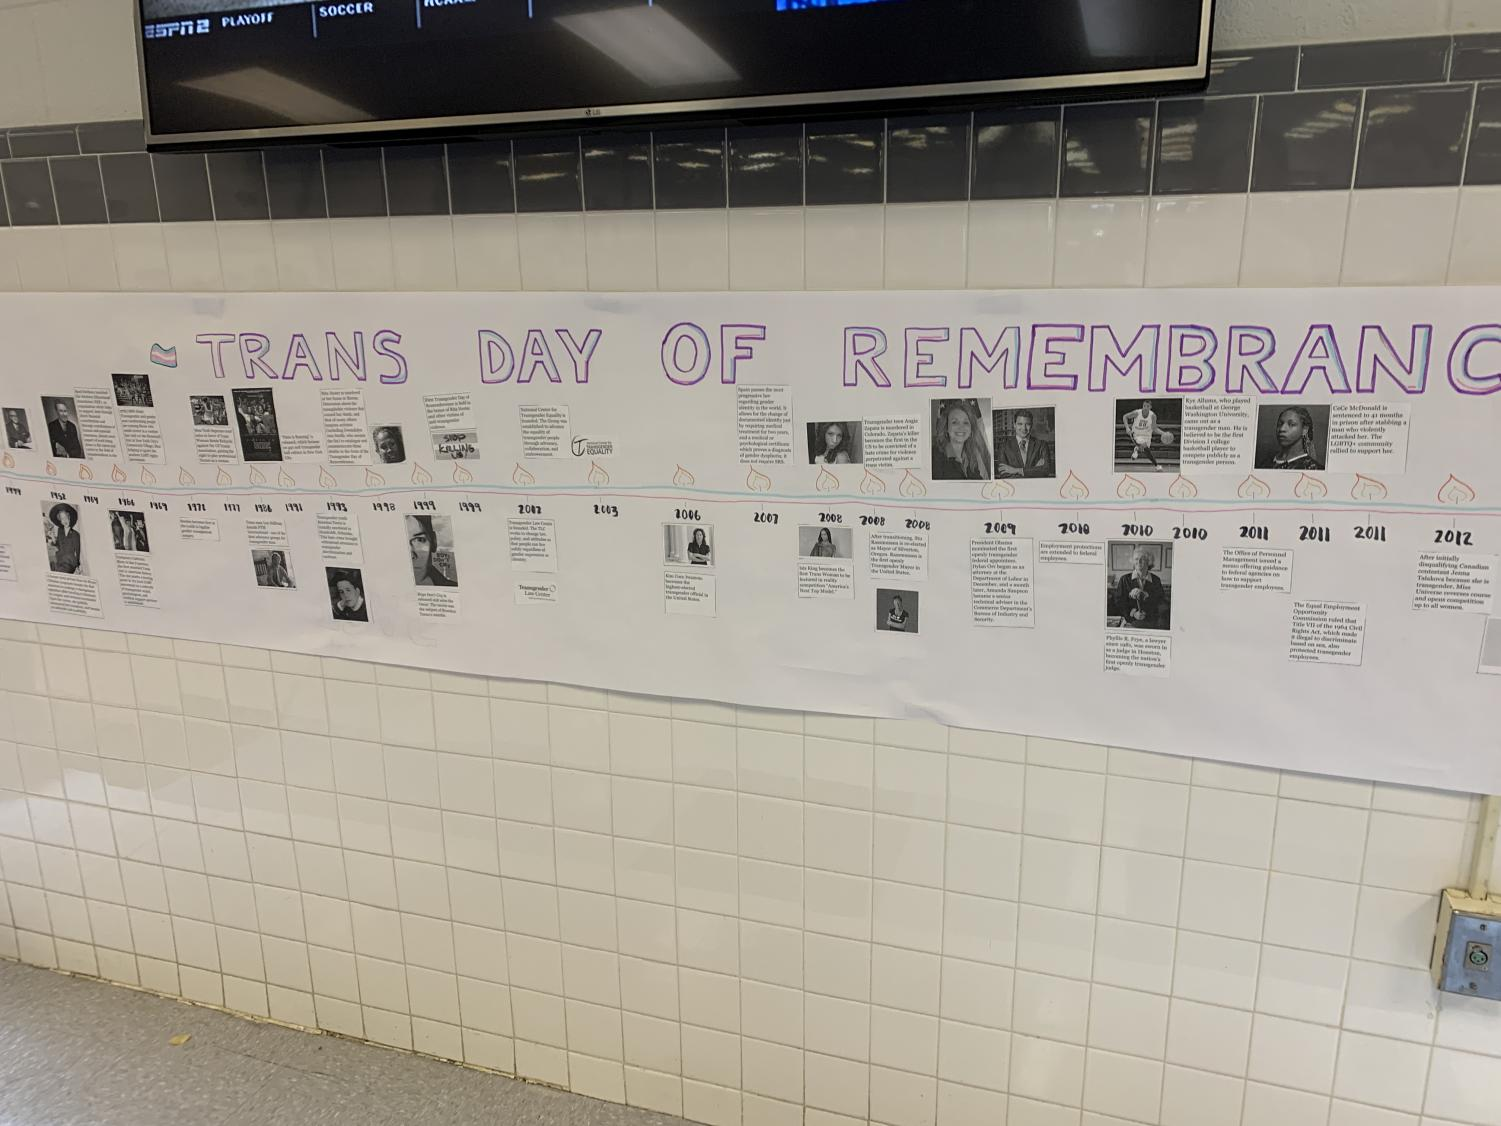 The Trans Day of Remembrance timeline hangs in a central location in the cafeteria.